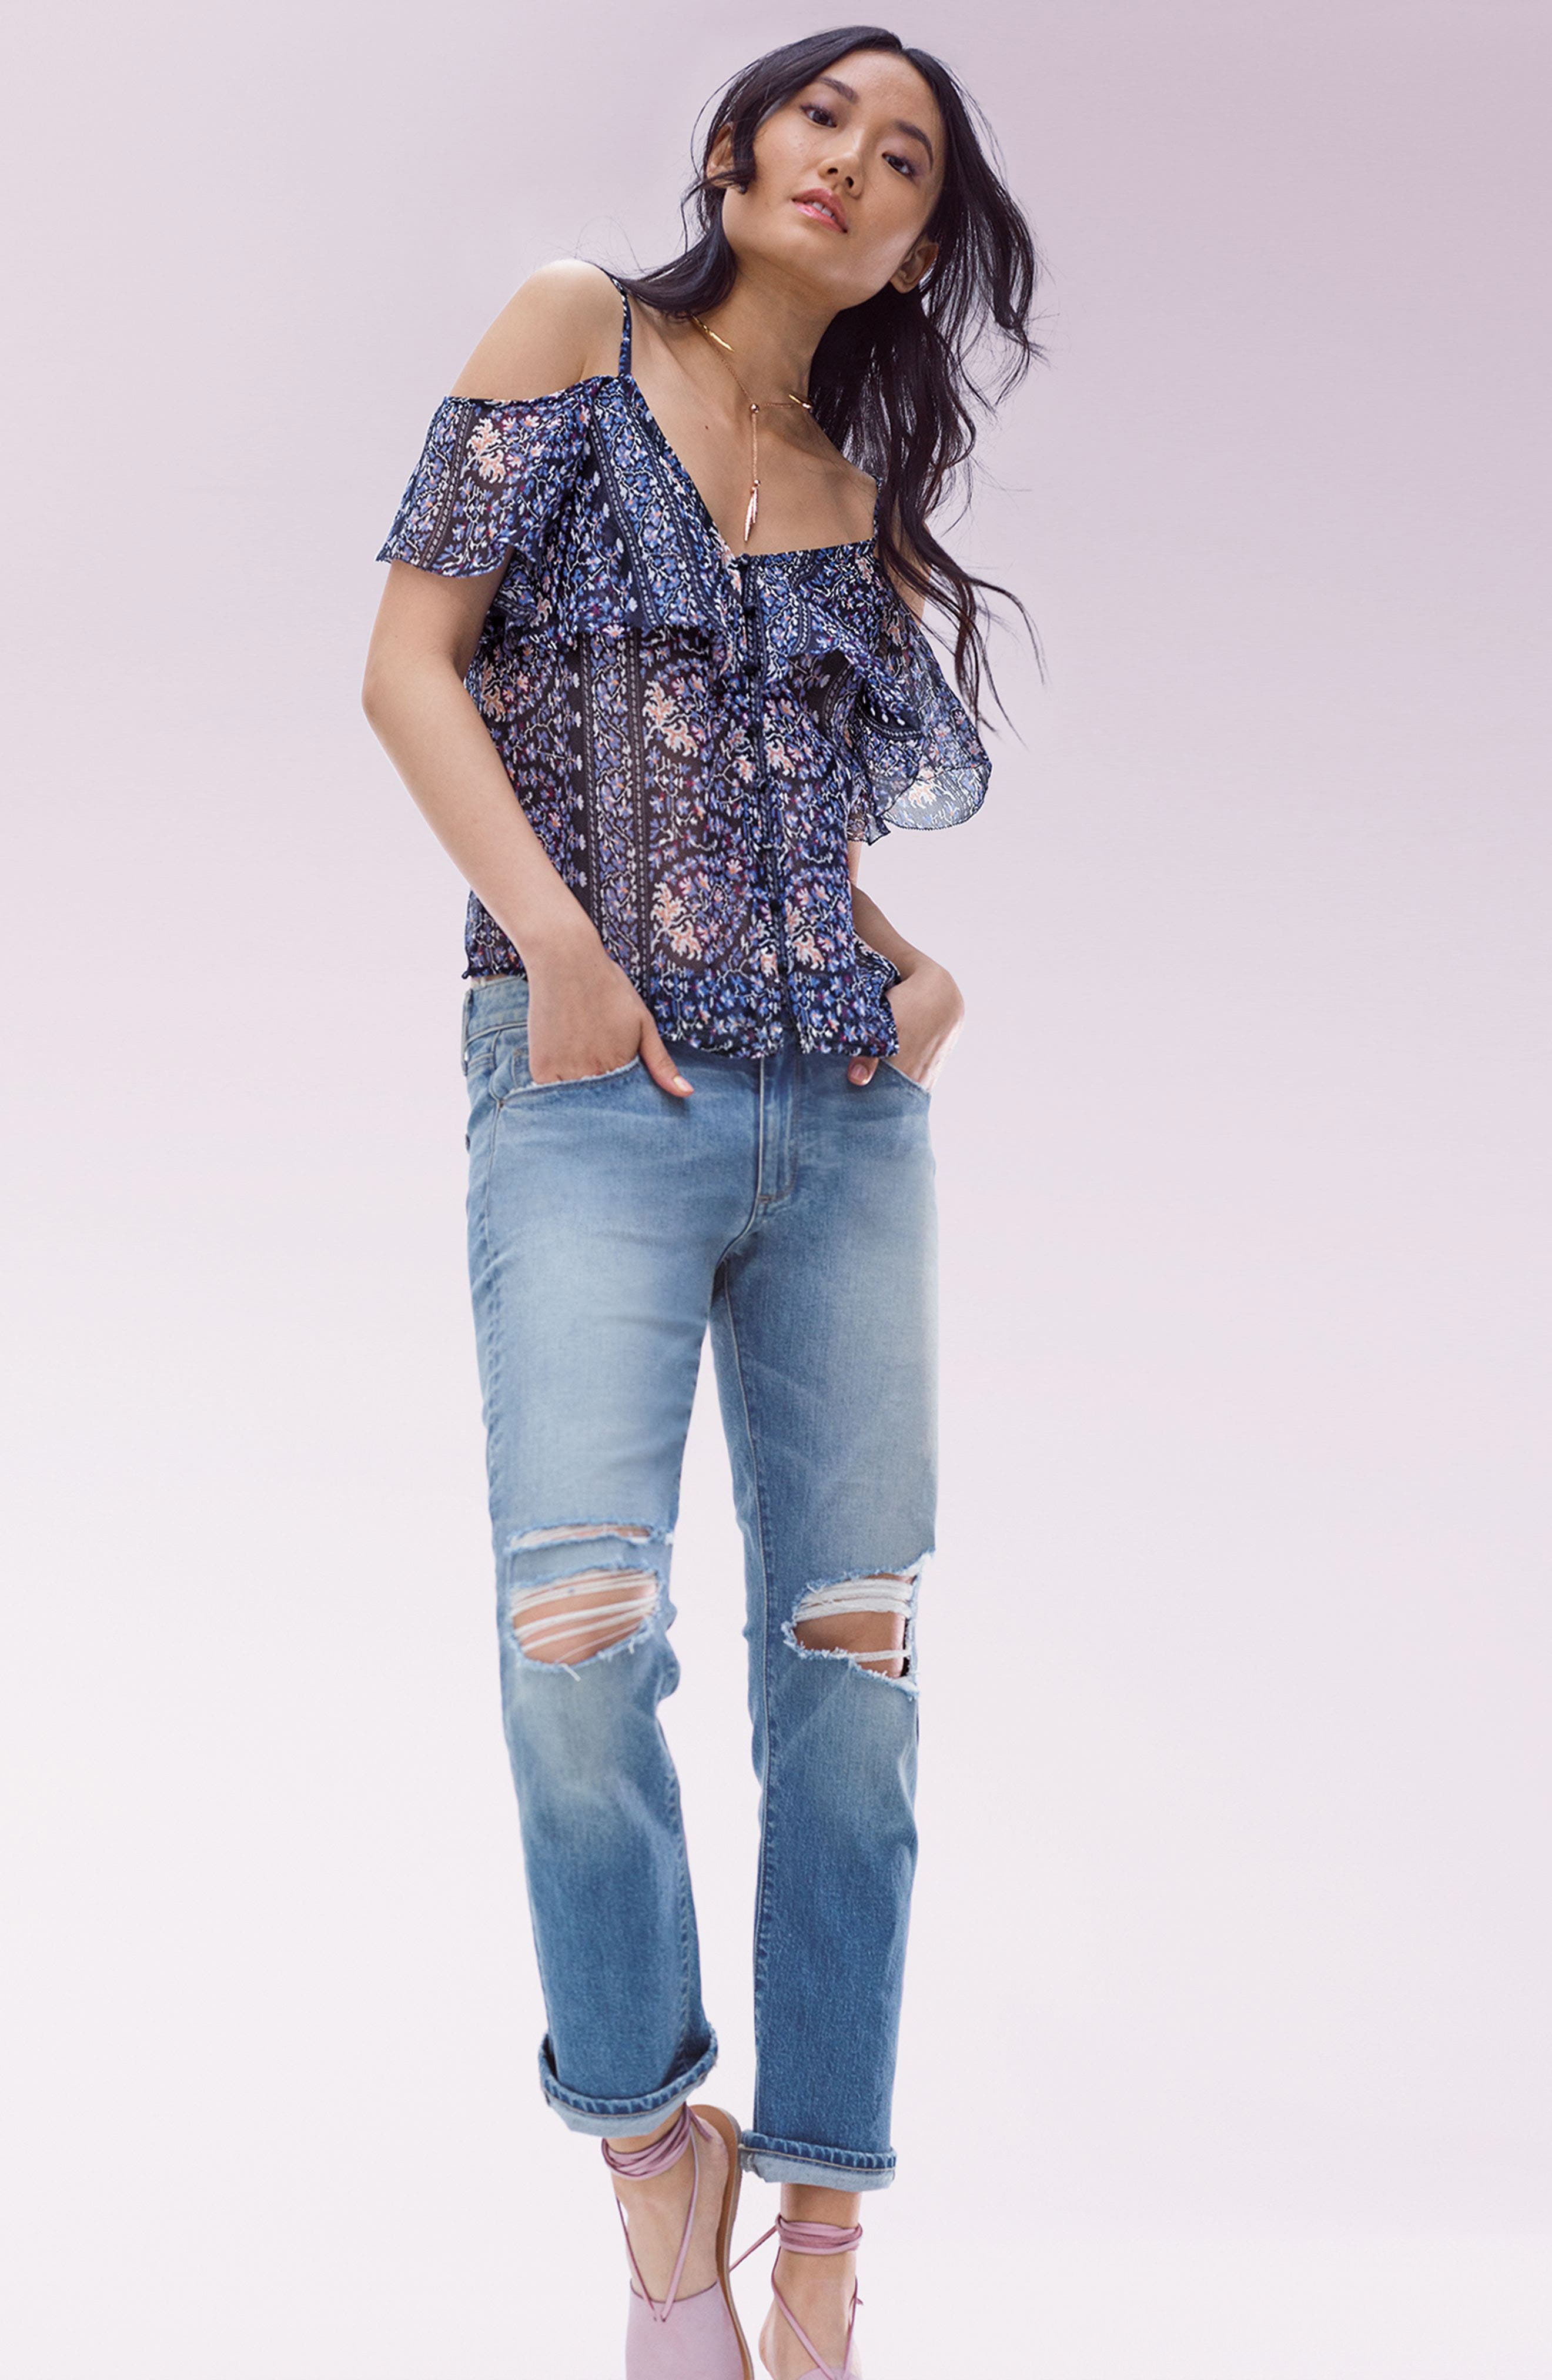 PAIGE Top & Pants Outfit with Accessories